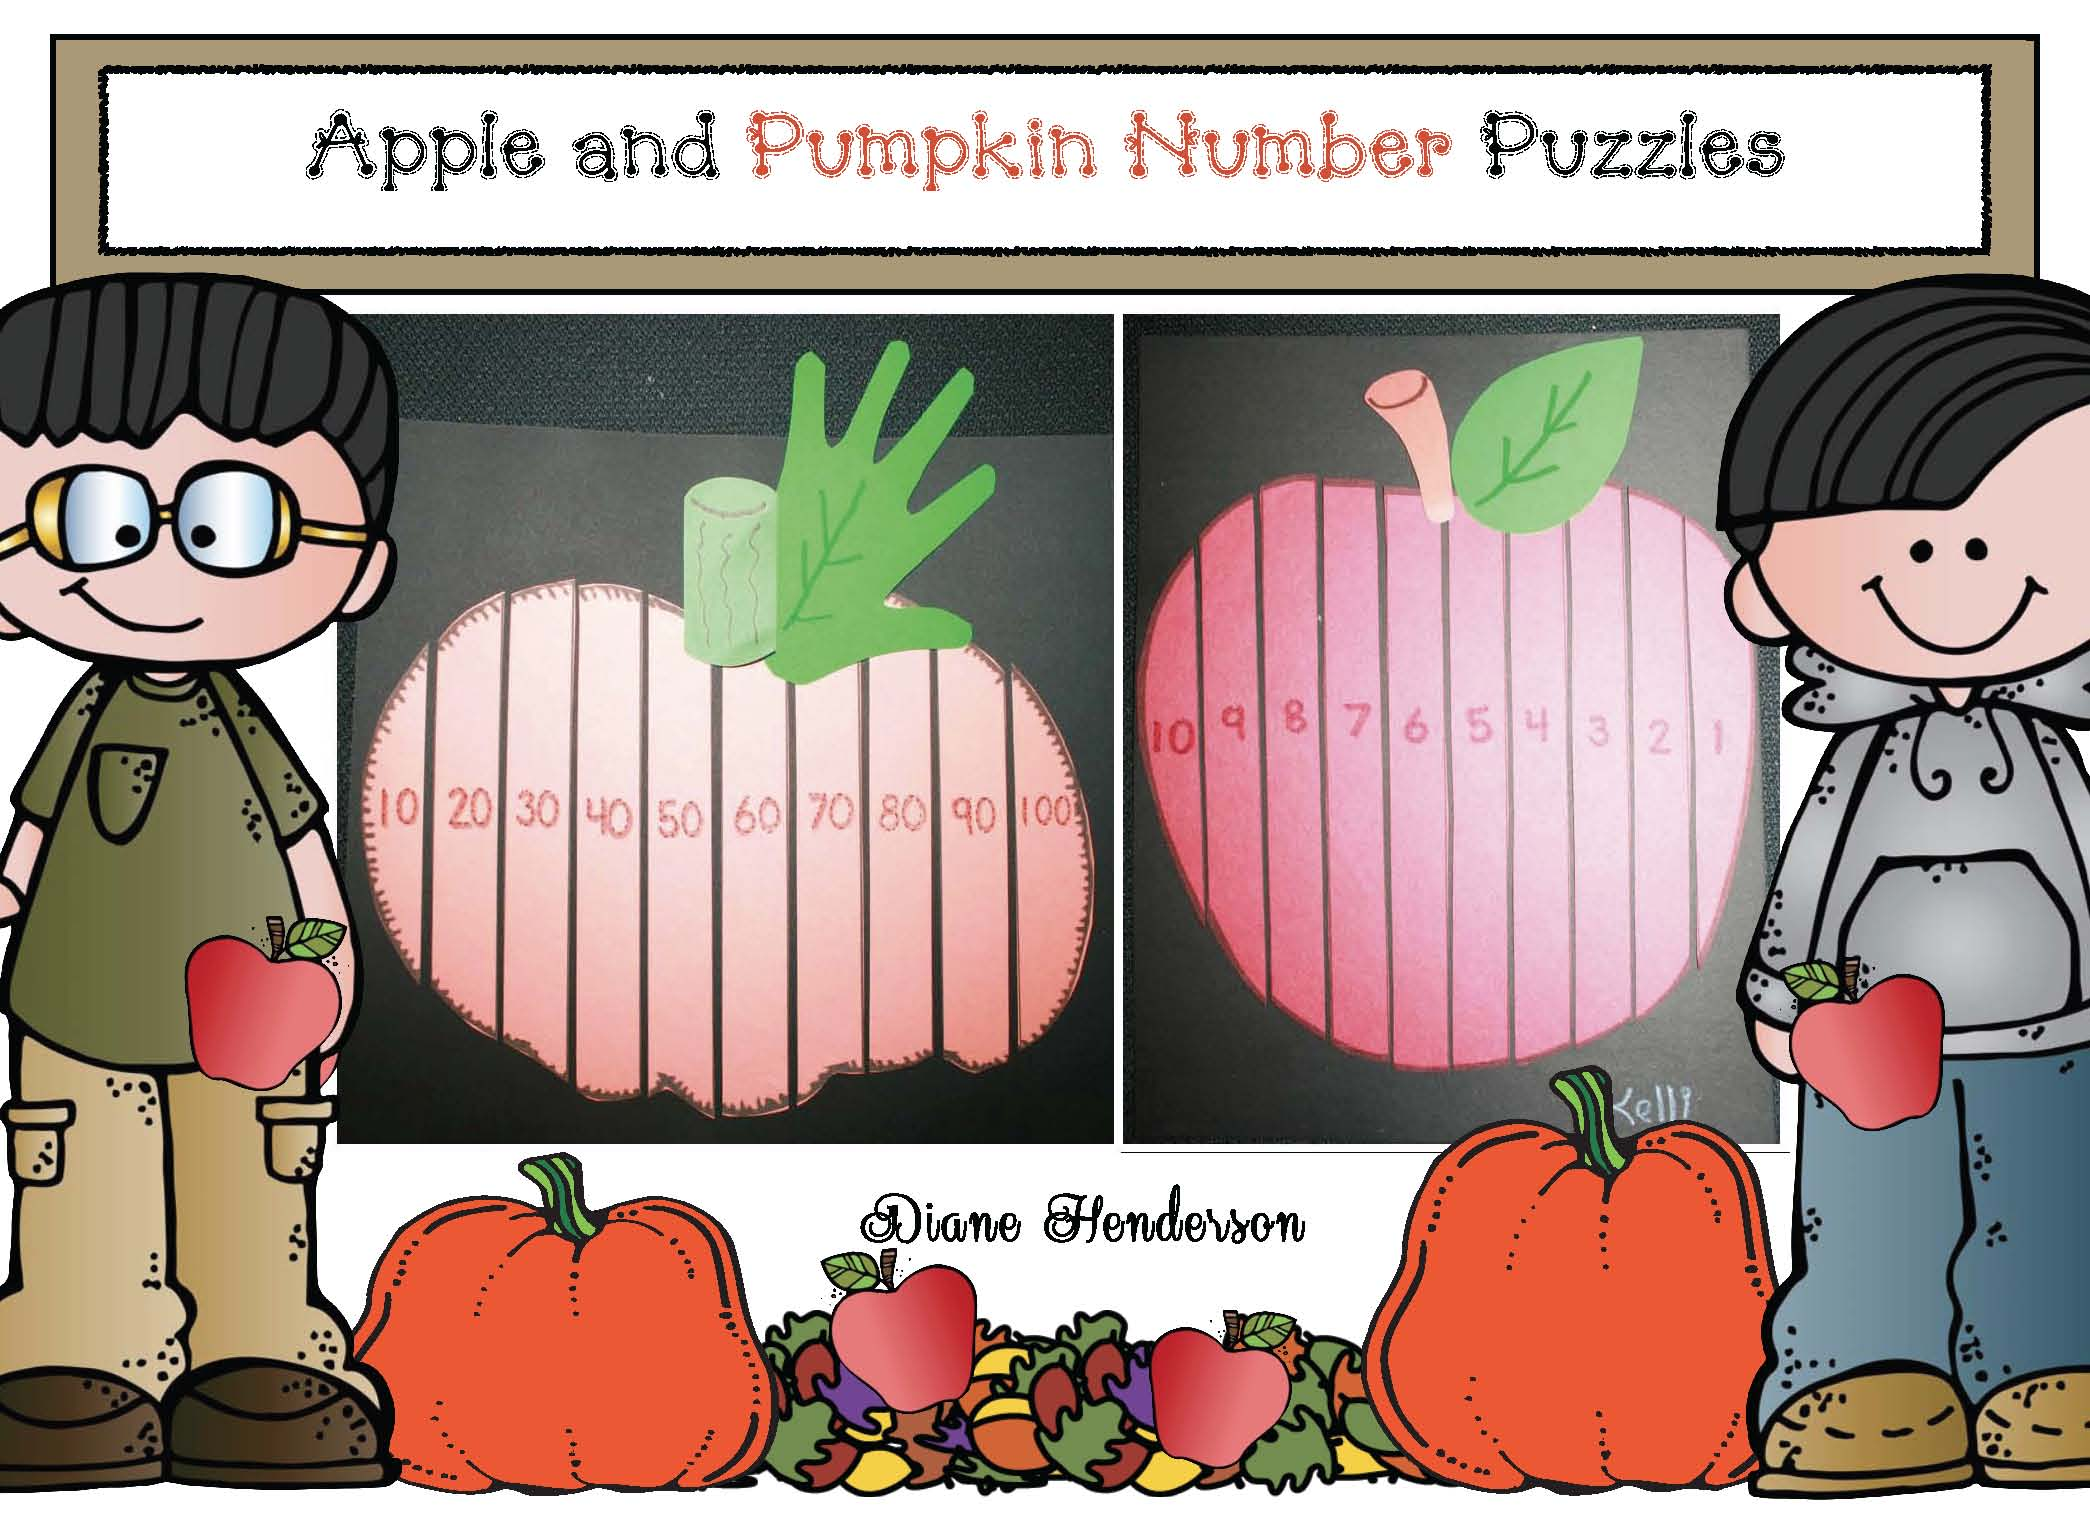 pumpkin activities, pumpkin crafts, apple activities, apple crafts, pumpkin puzzles, apple puzzles, skip counting activitivites, counting backwards activities